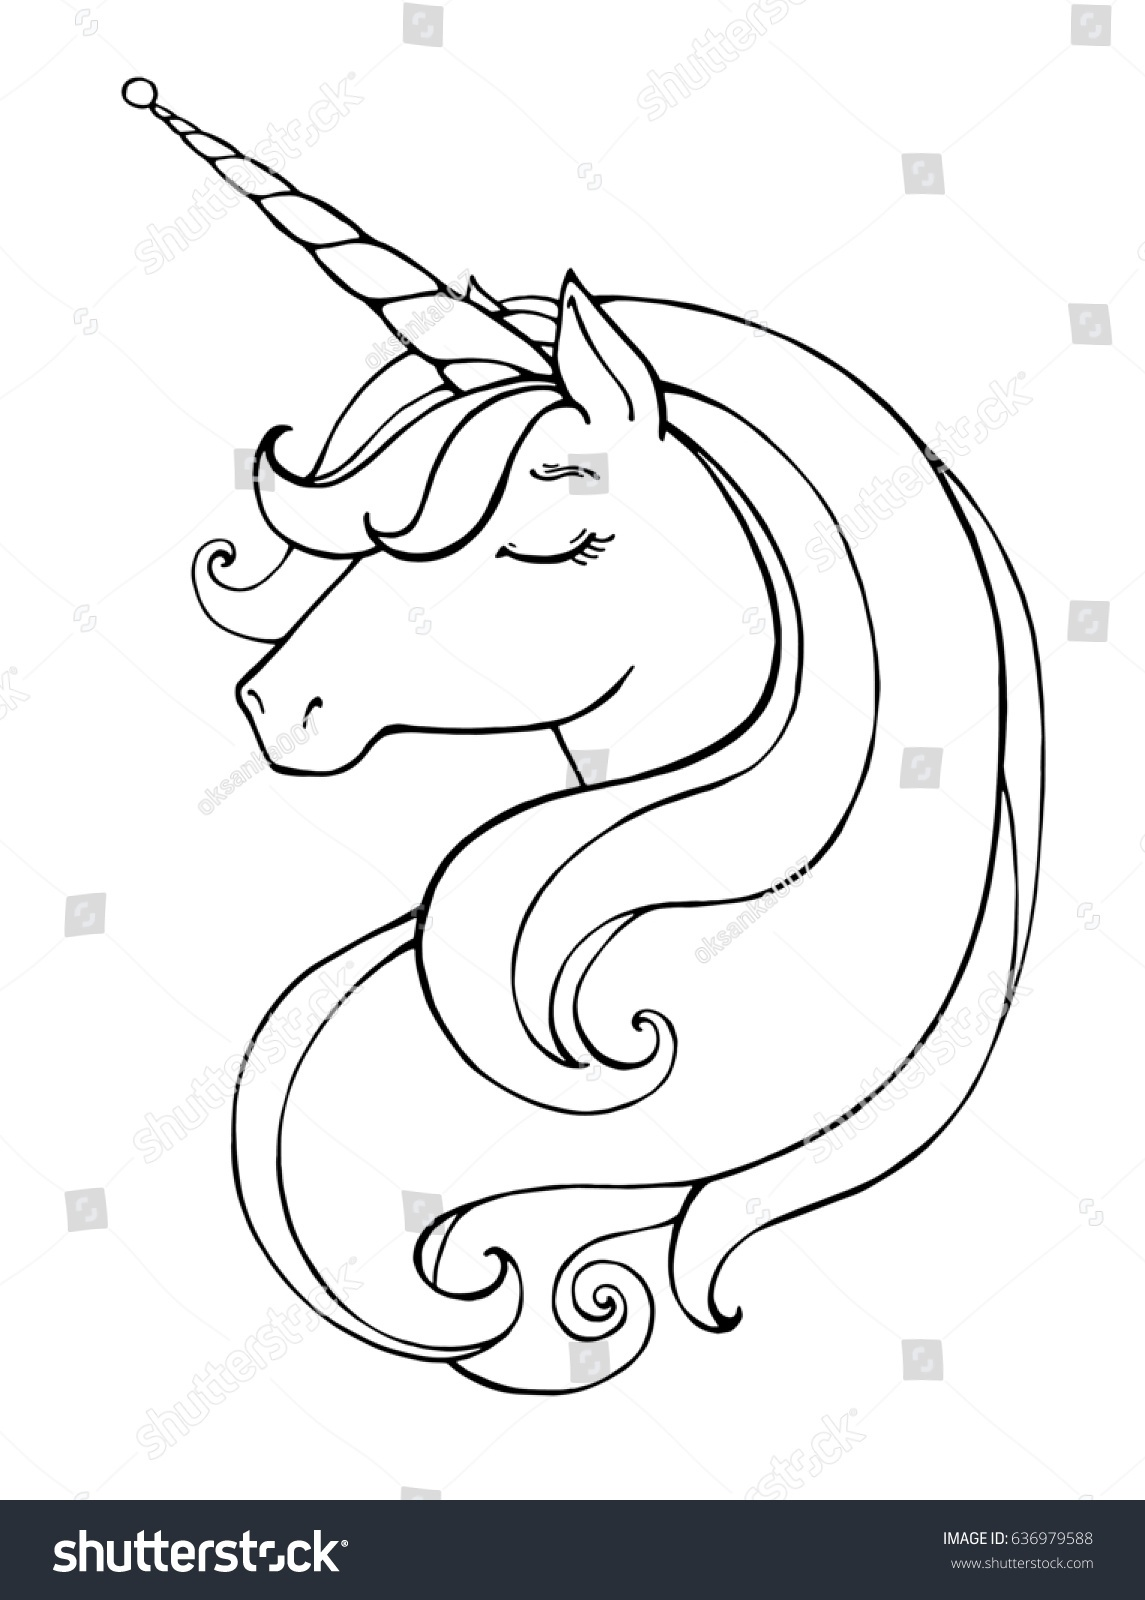 Free Printable Unicorn Coloring Pages - Coloring Pages For Kids - Free Printable Unicorn Coloring Pages